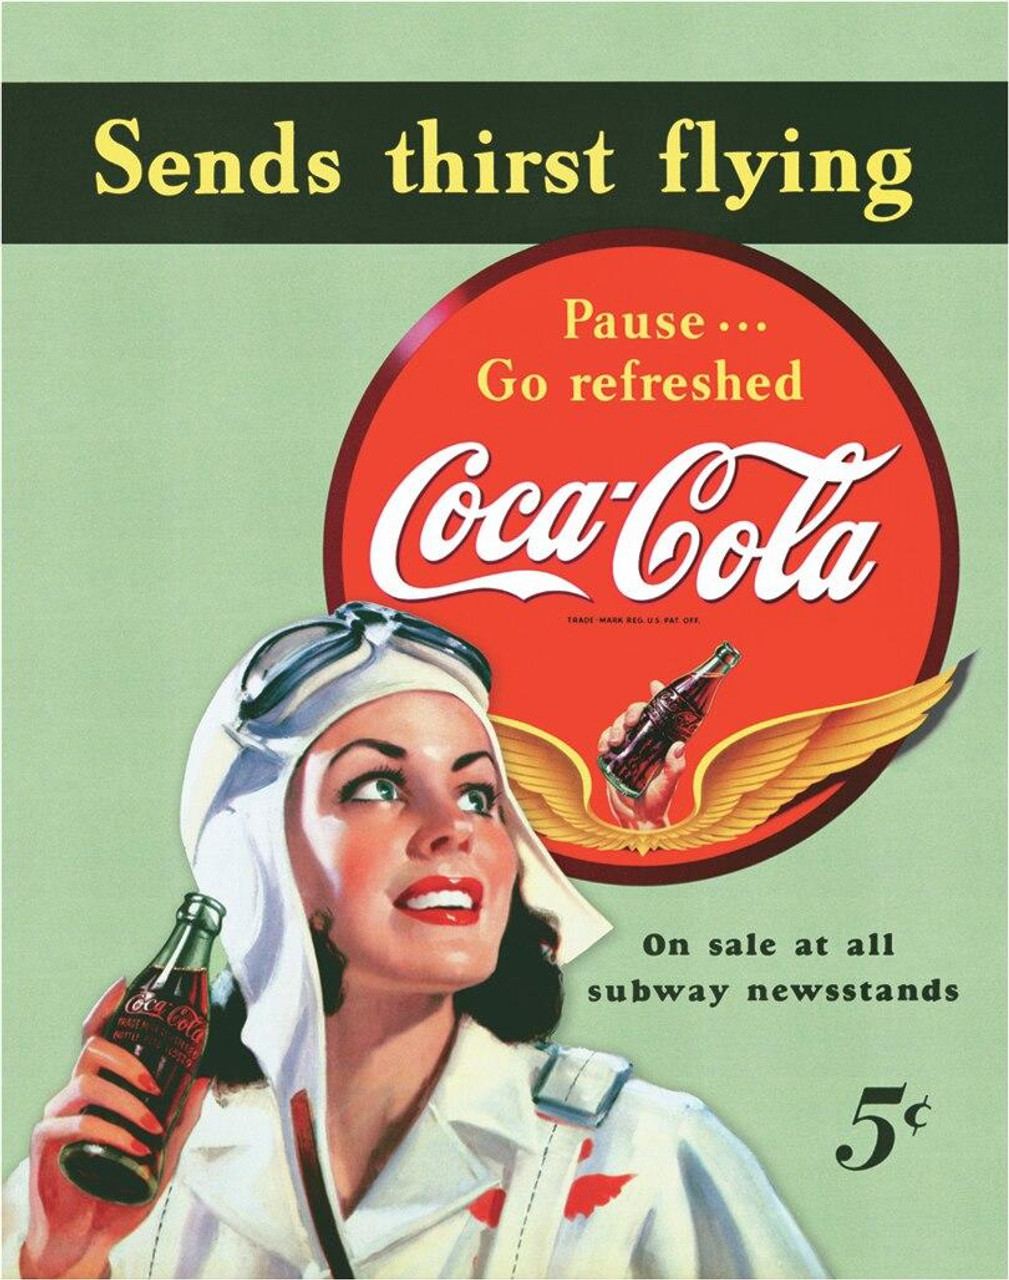 Coca-Cola COKE - Sends Thirst Flying